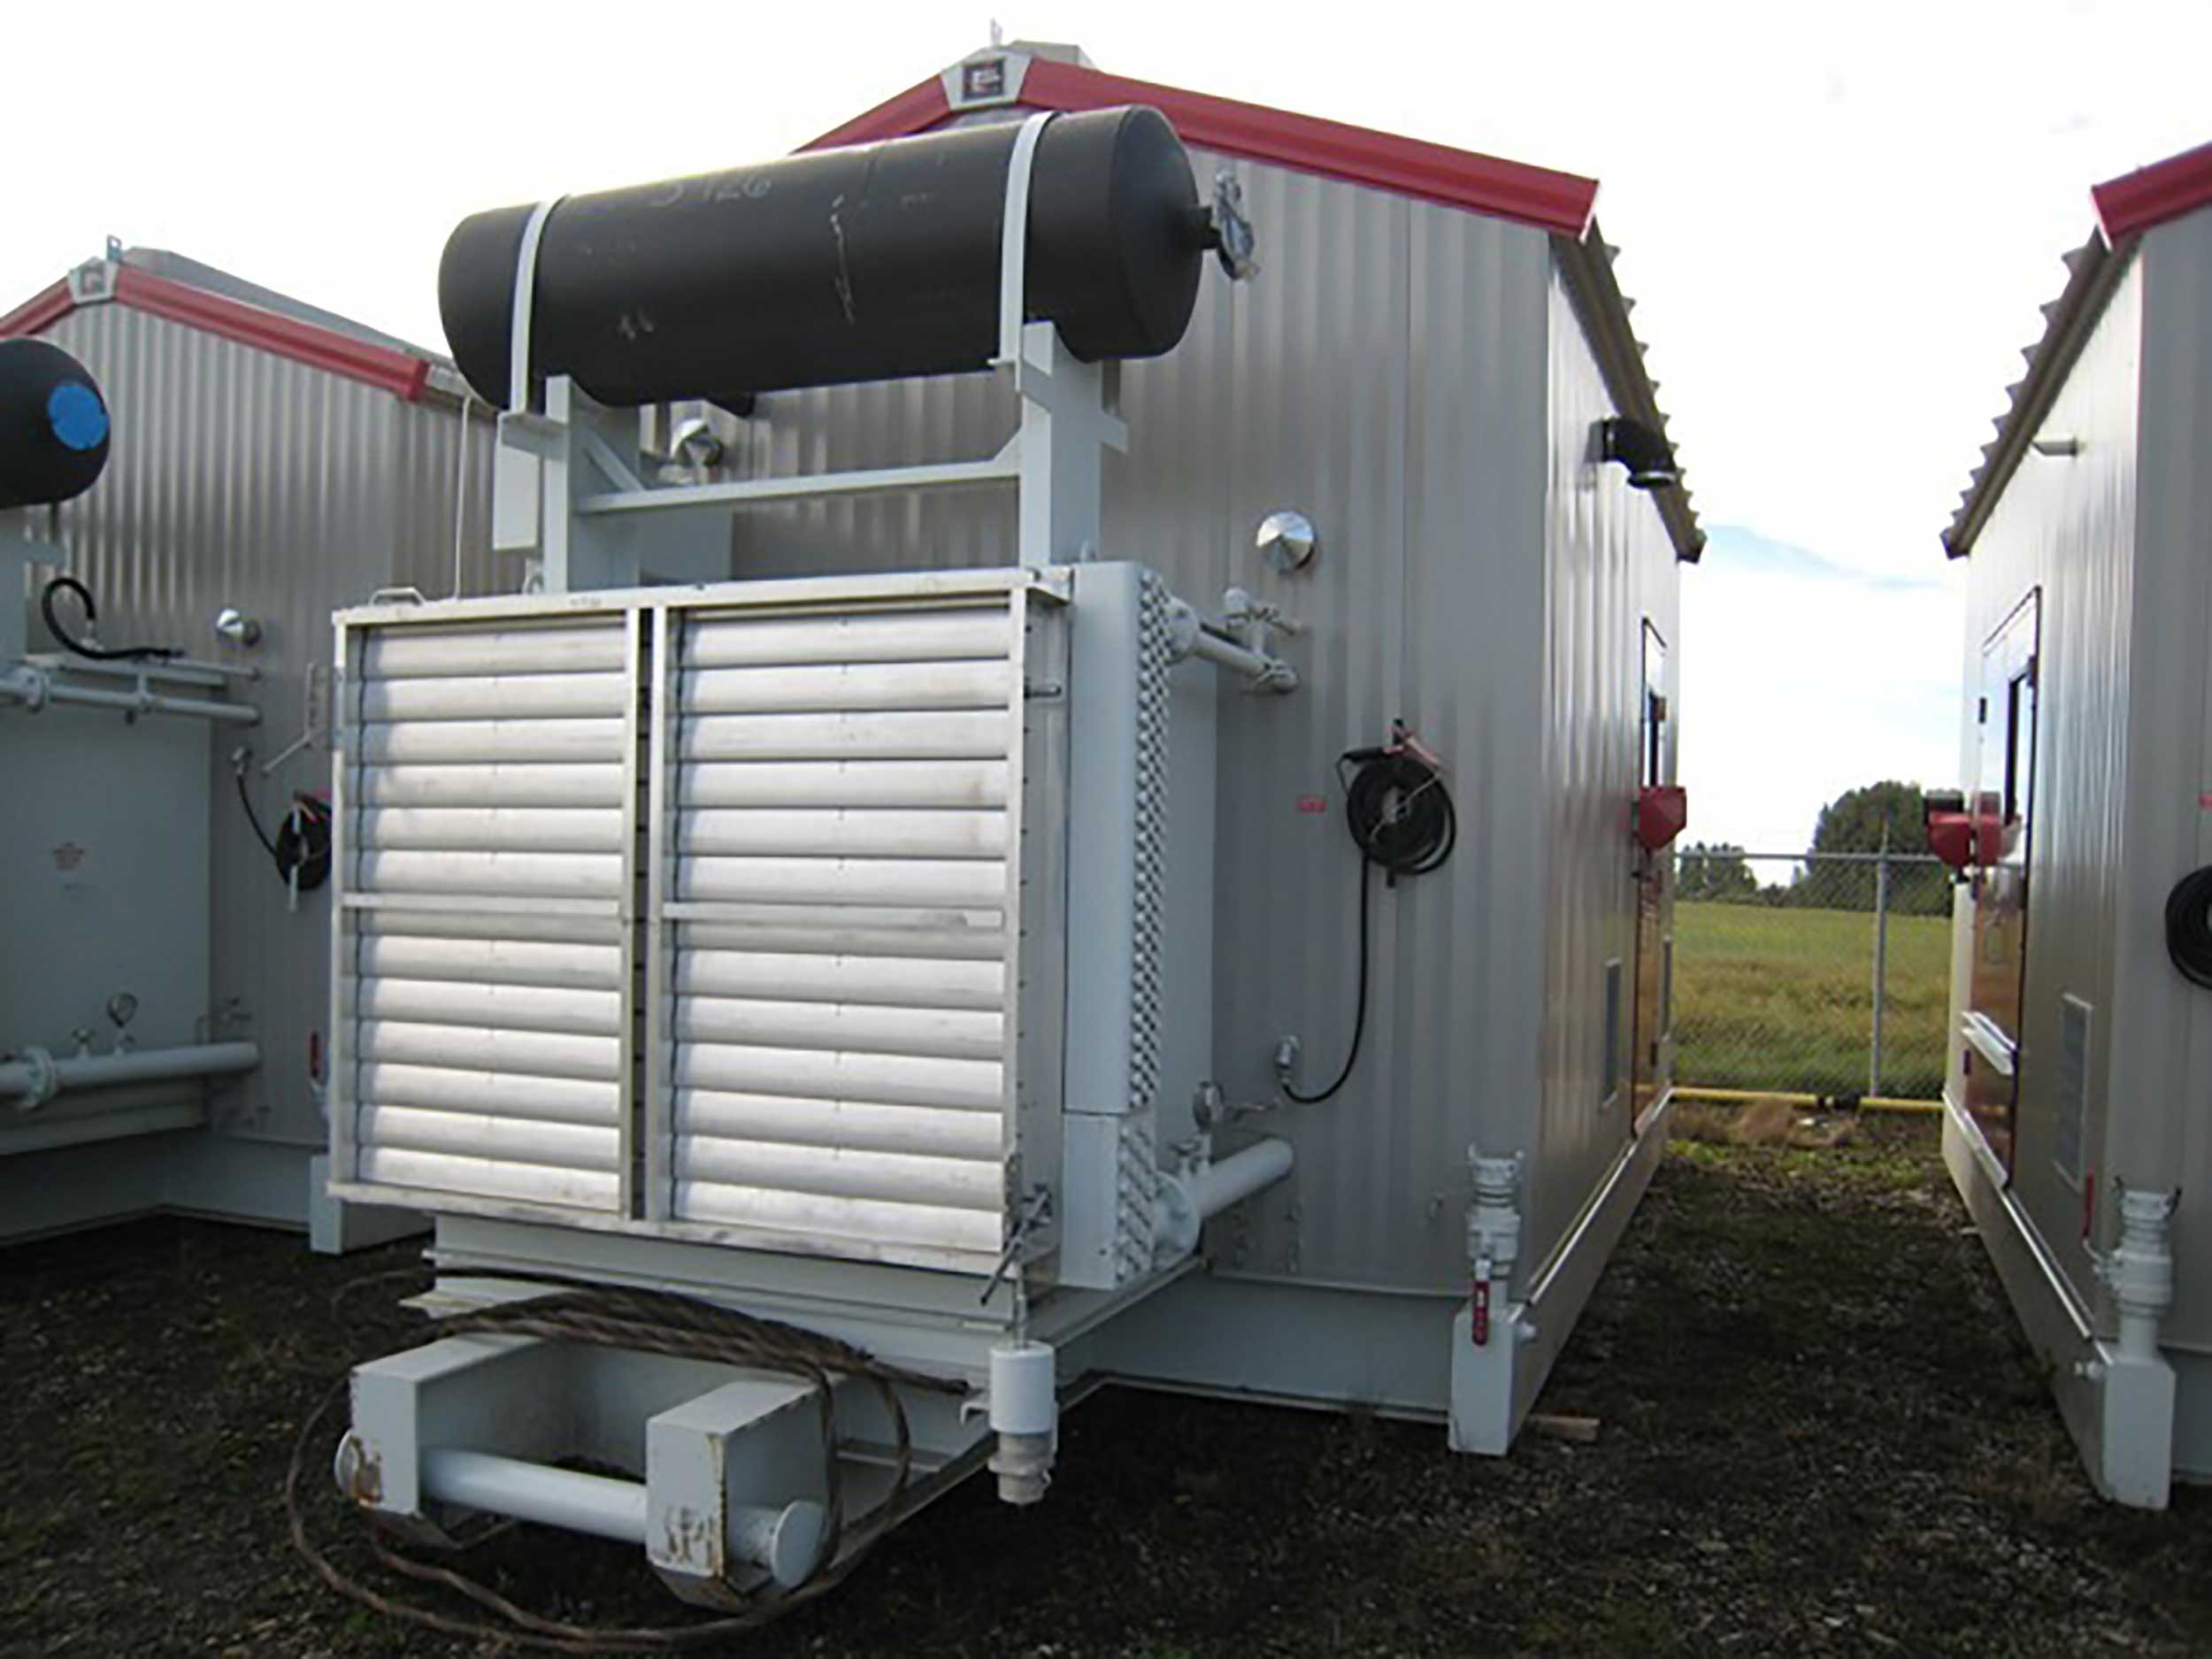 Exterior 2 New / Never Used 95HP Caterpillar Vacuum Reciprocating Compressors For Sale in Alberta Canada